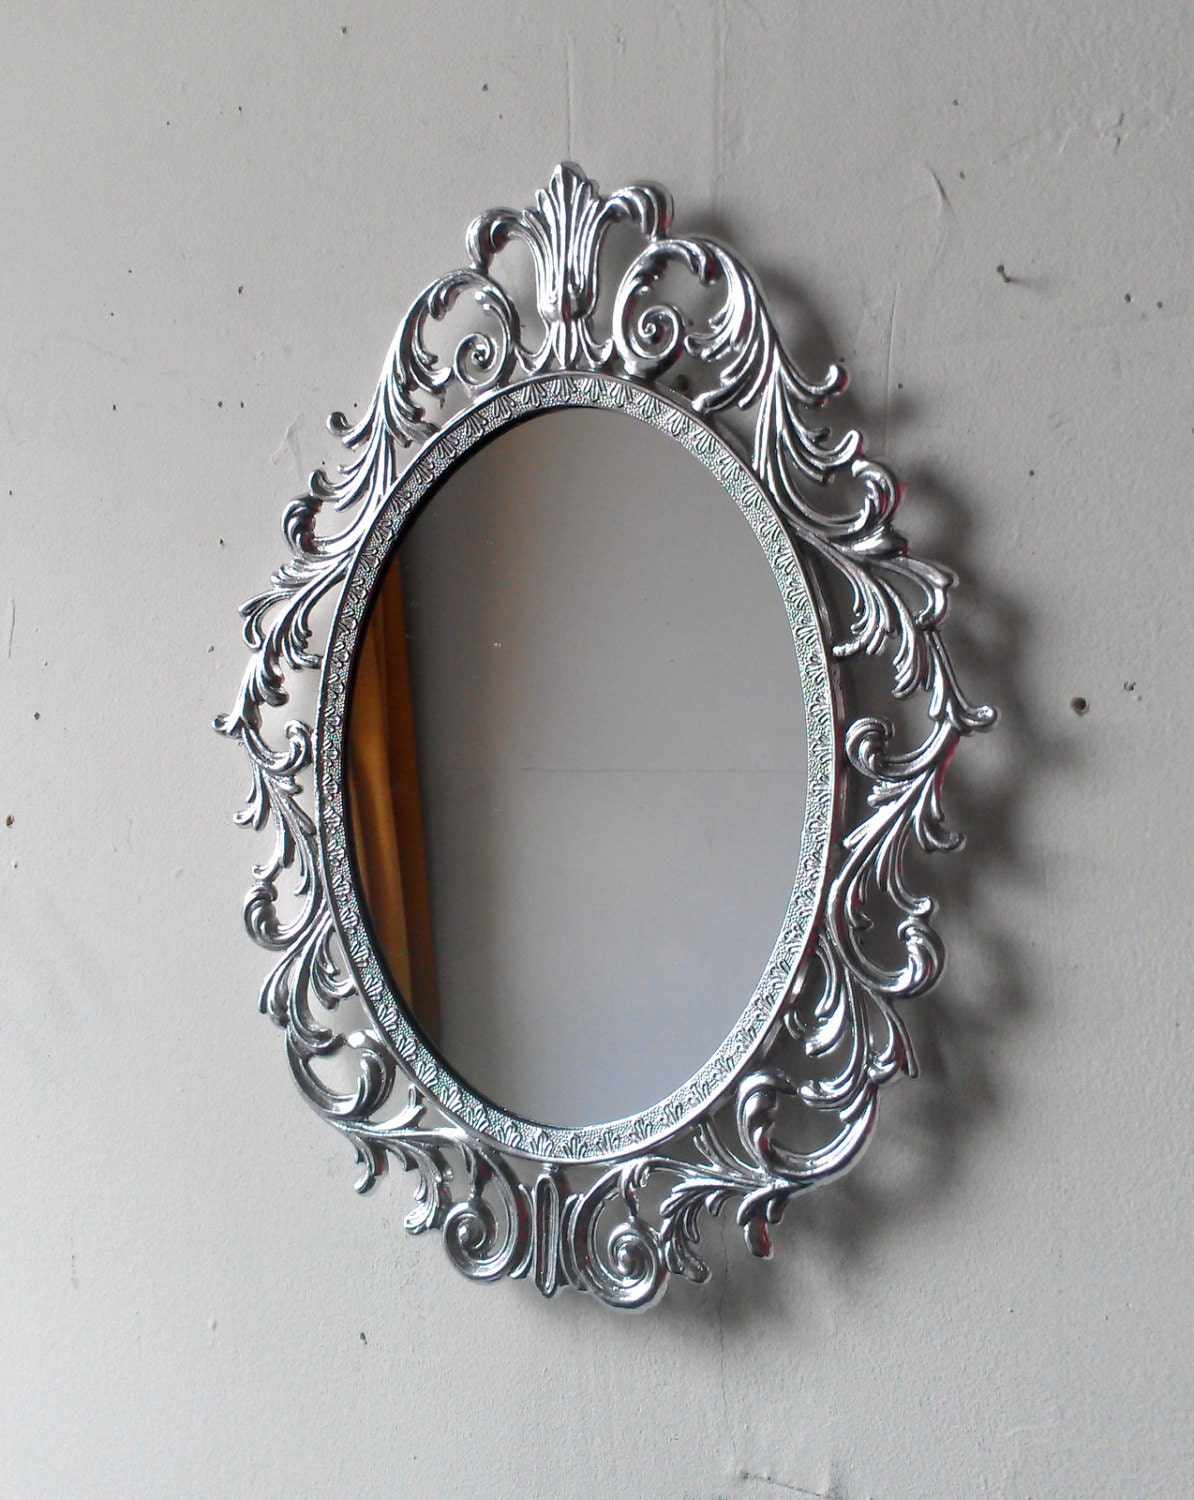 Ornate princess mirror in shiny silver 13 by 10 inch vintage for Ornate mirror